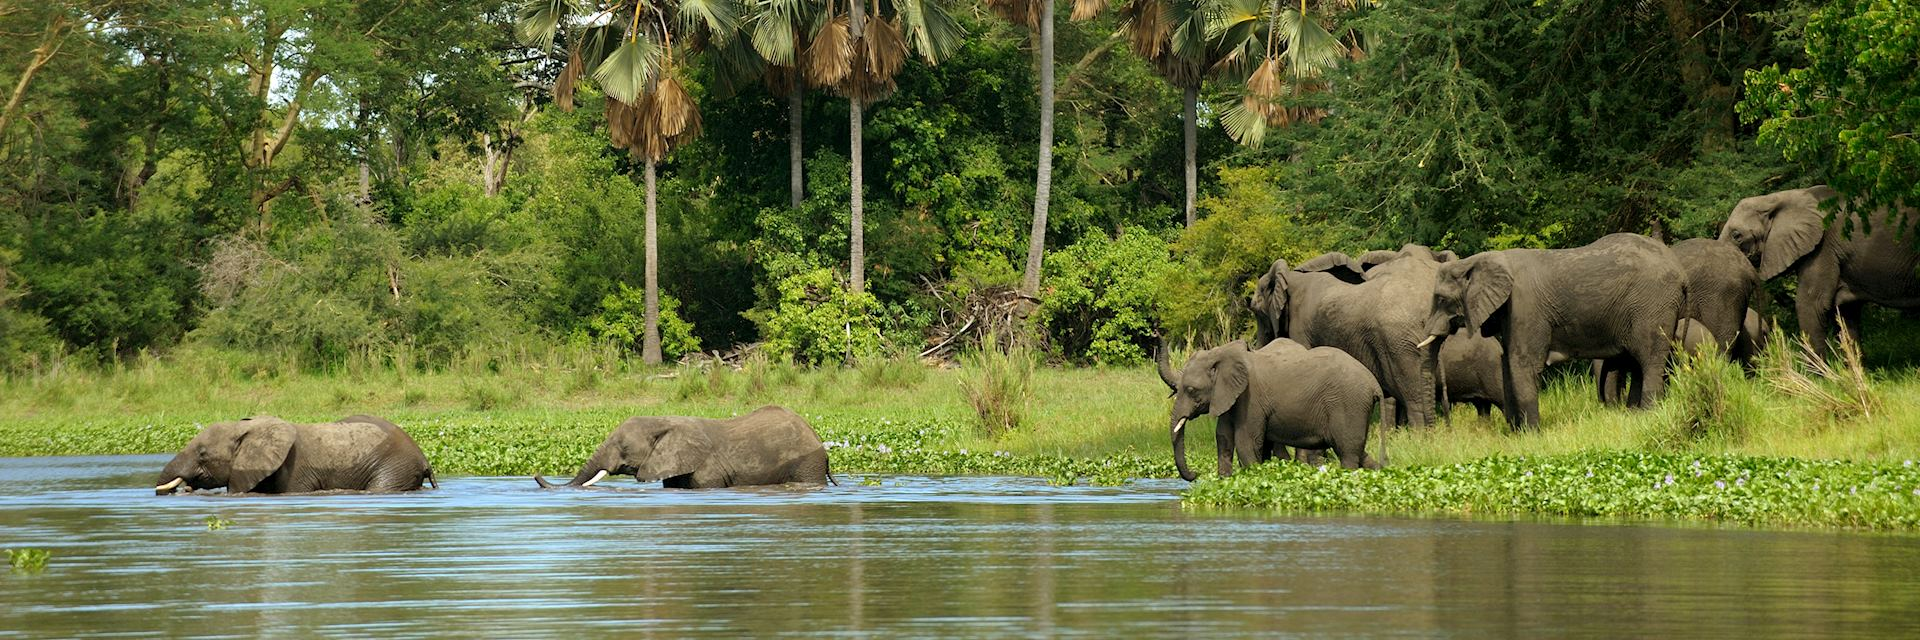 Elephants in Liwonde National Park, Malawi